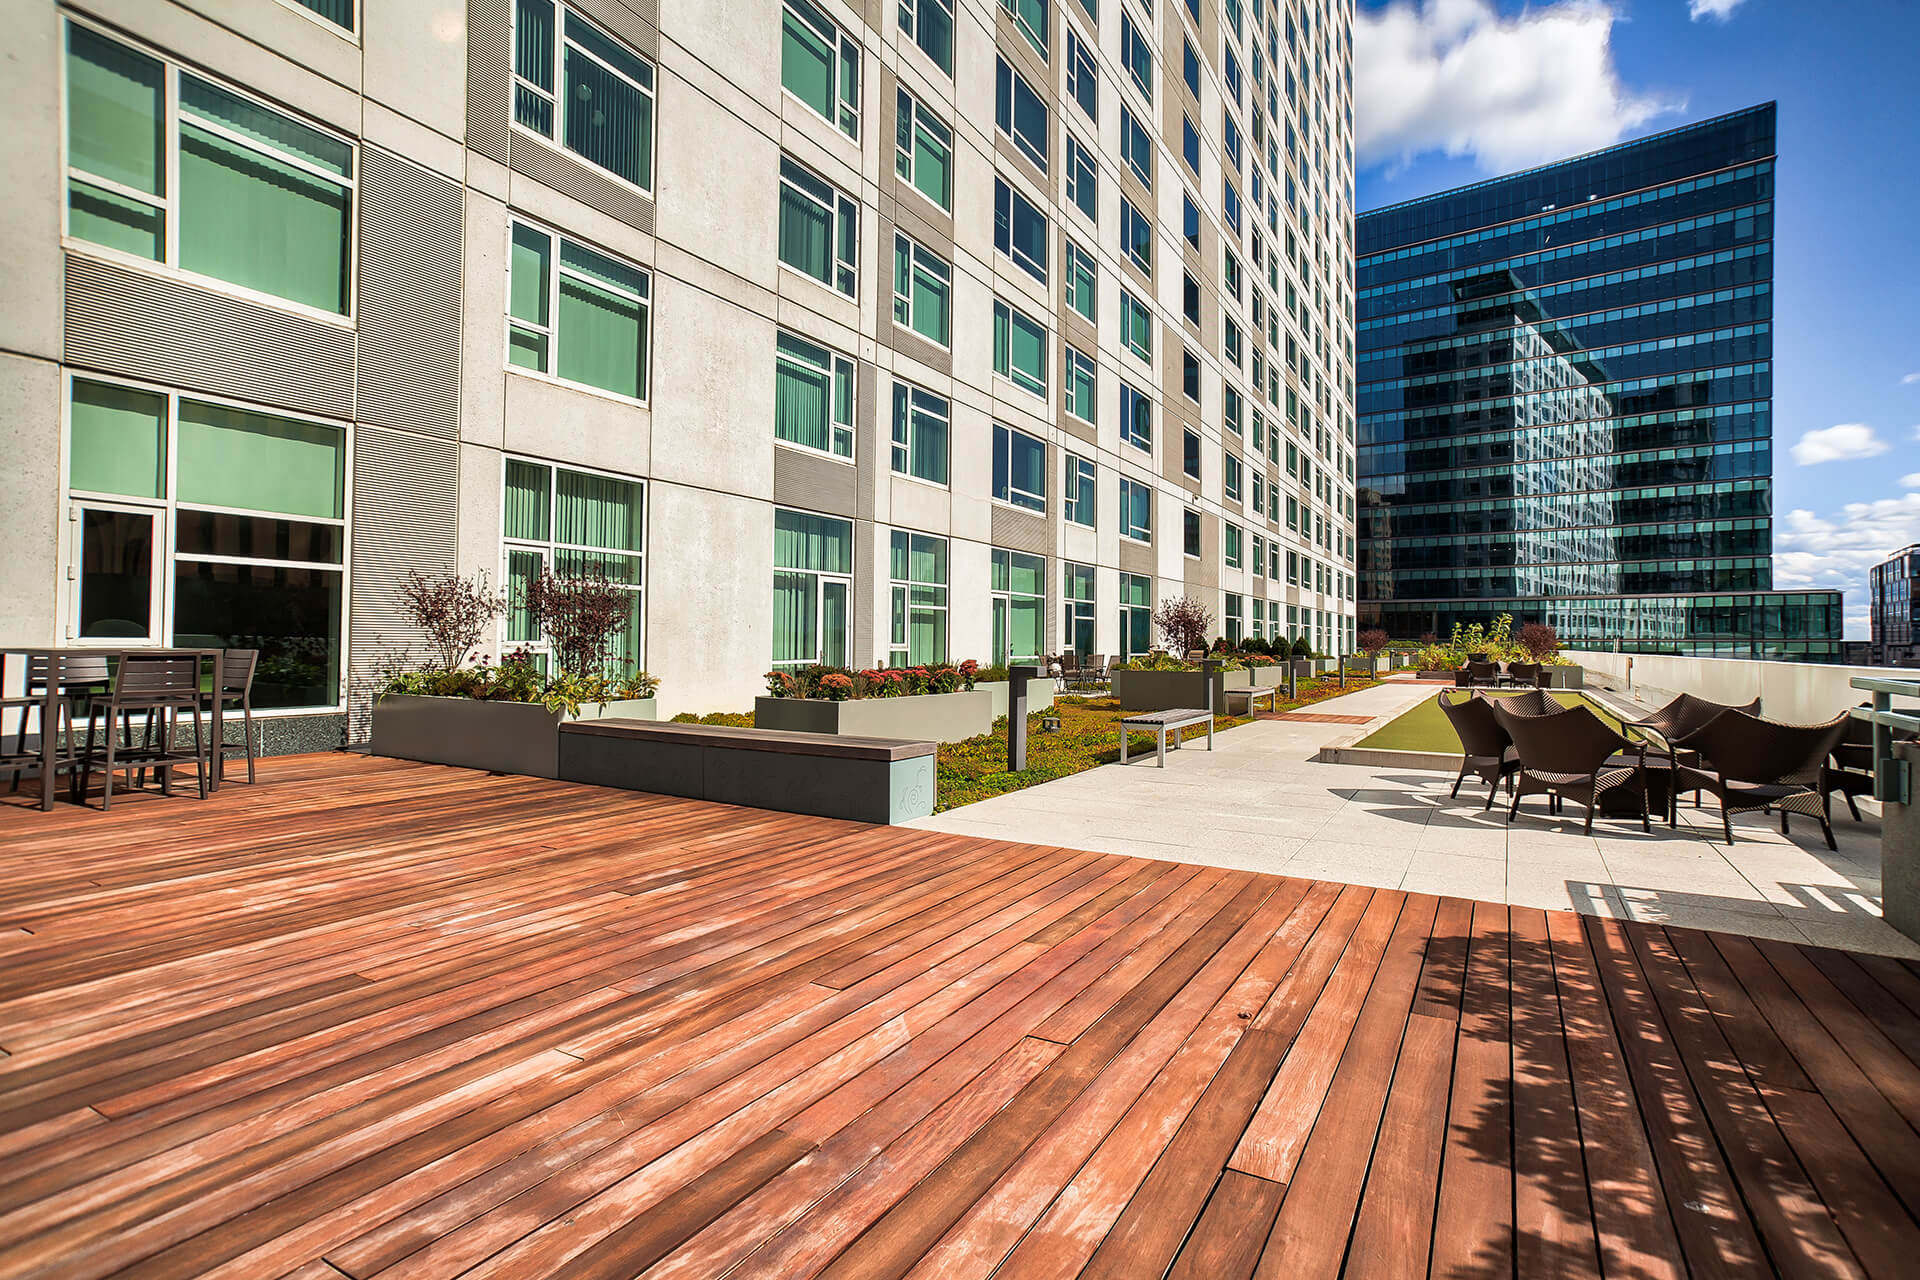 Community Garden Space for Resident Use at Waterside Place by Windsor, Boston, Massachusetts